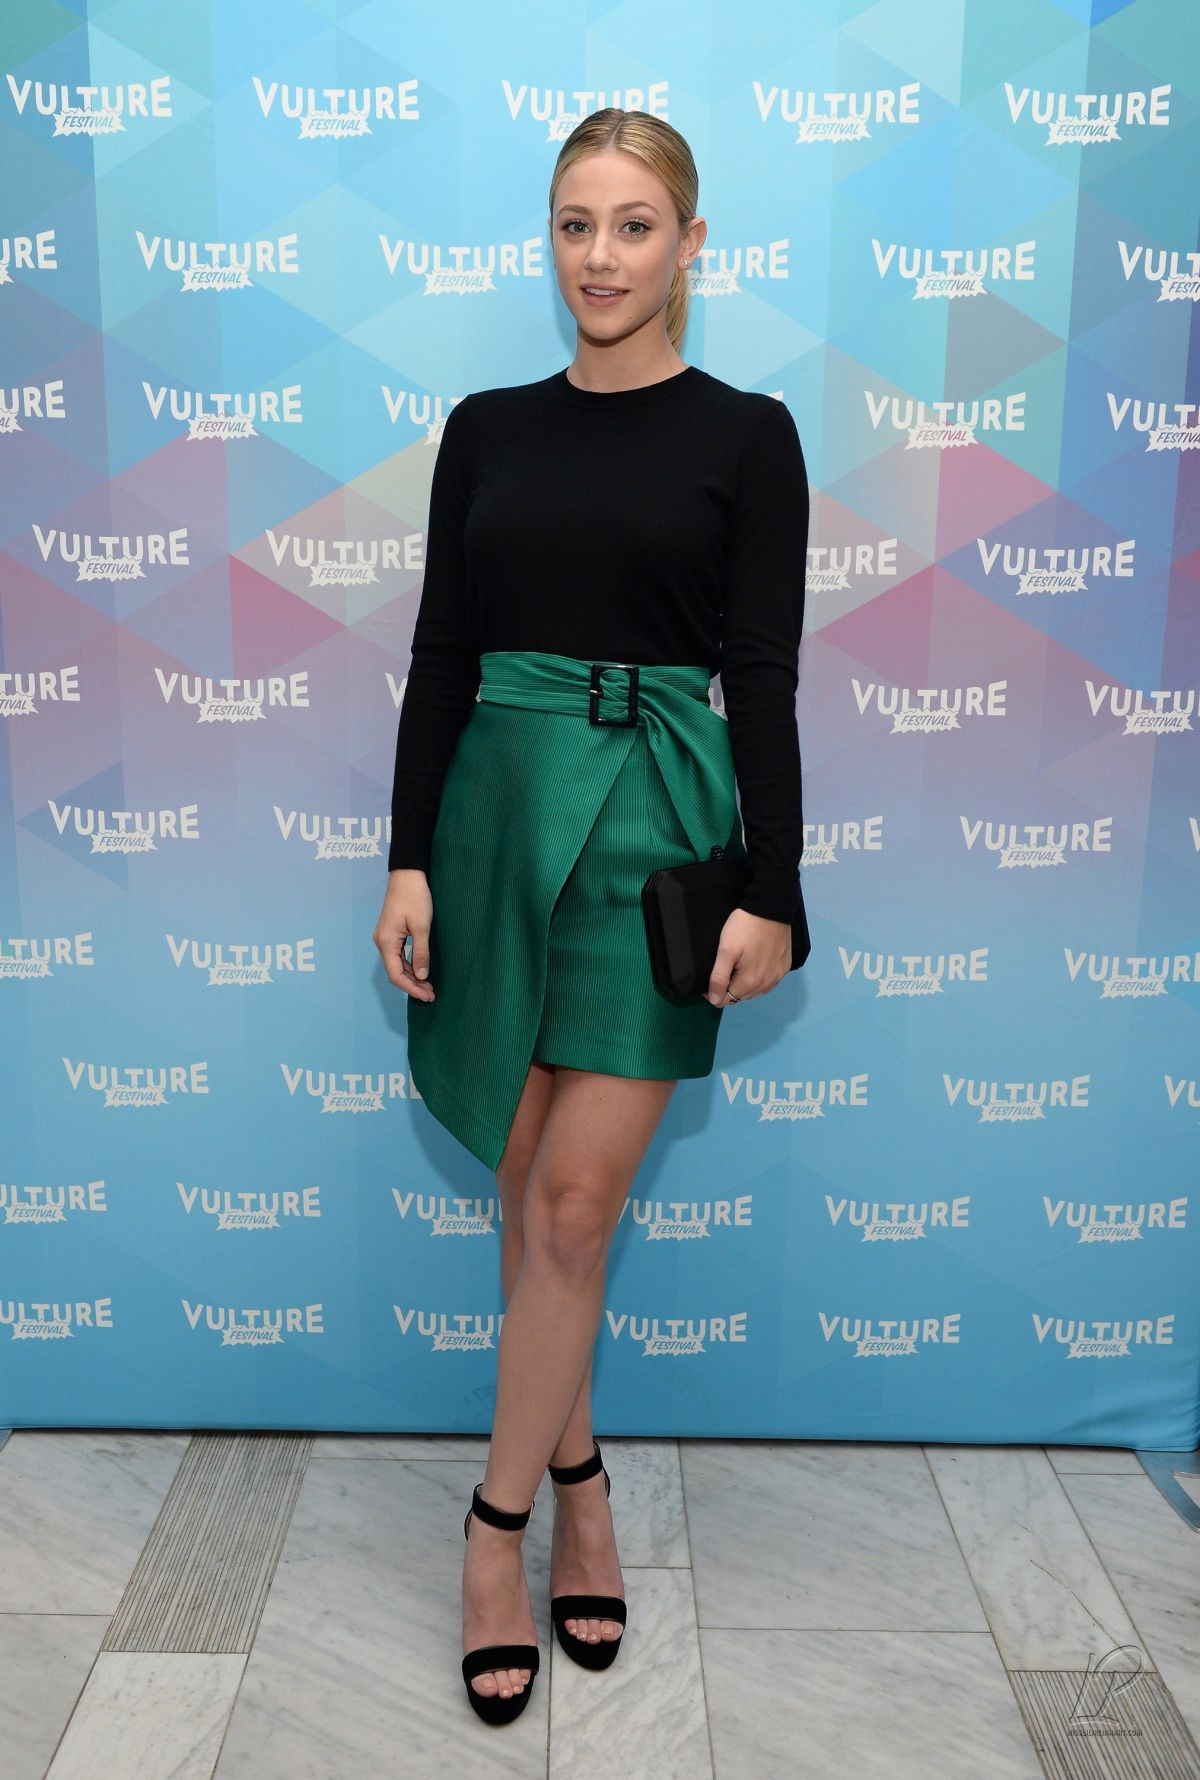 LILI REINHART at Vulture Festival in New York 05/20/2017